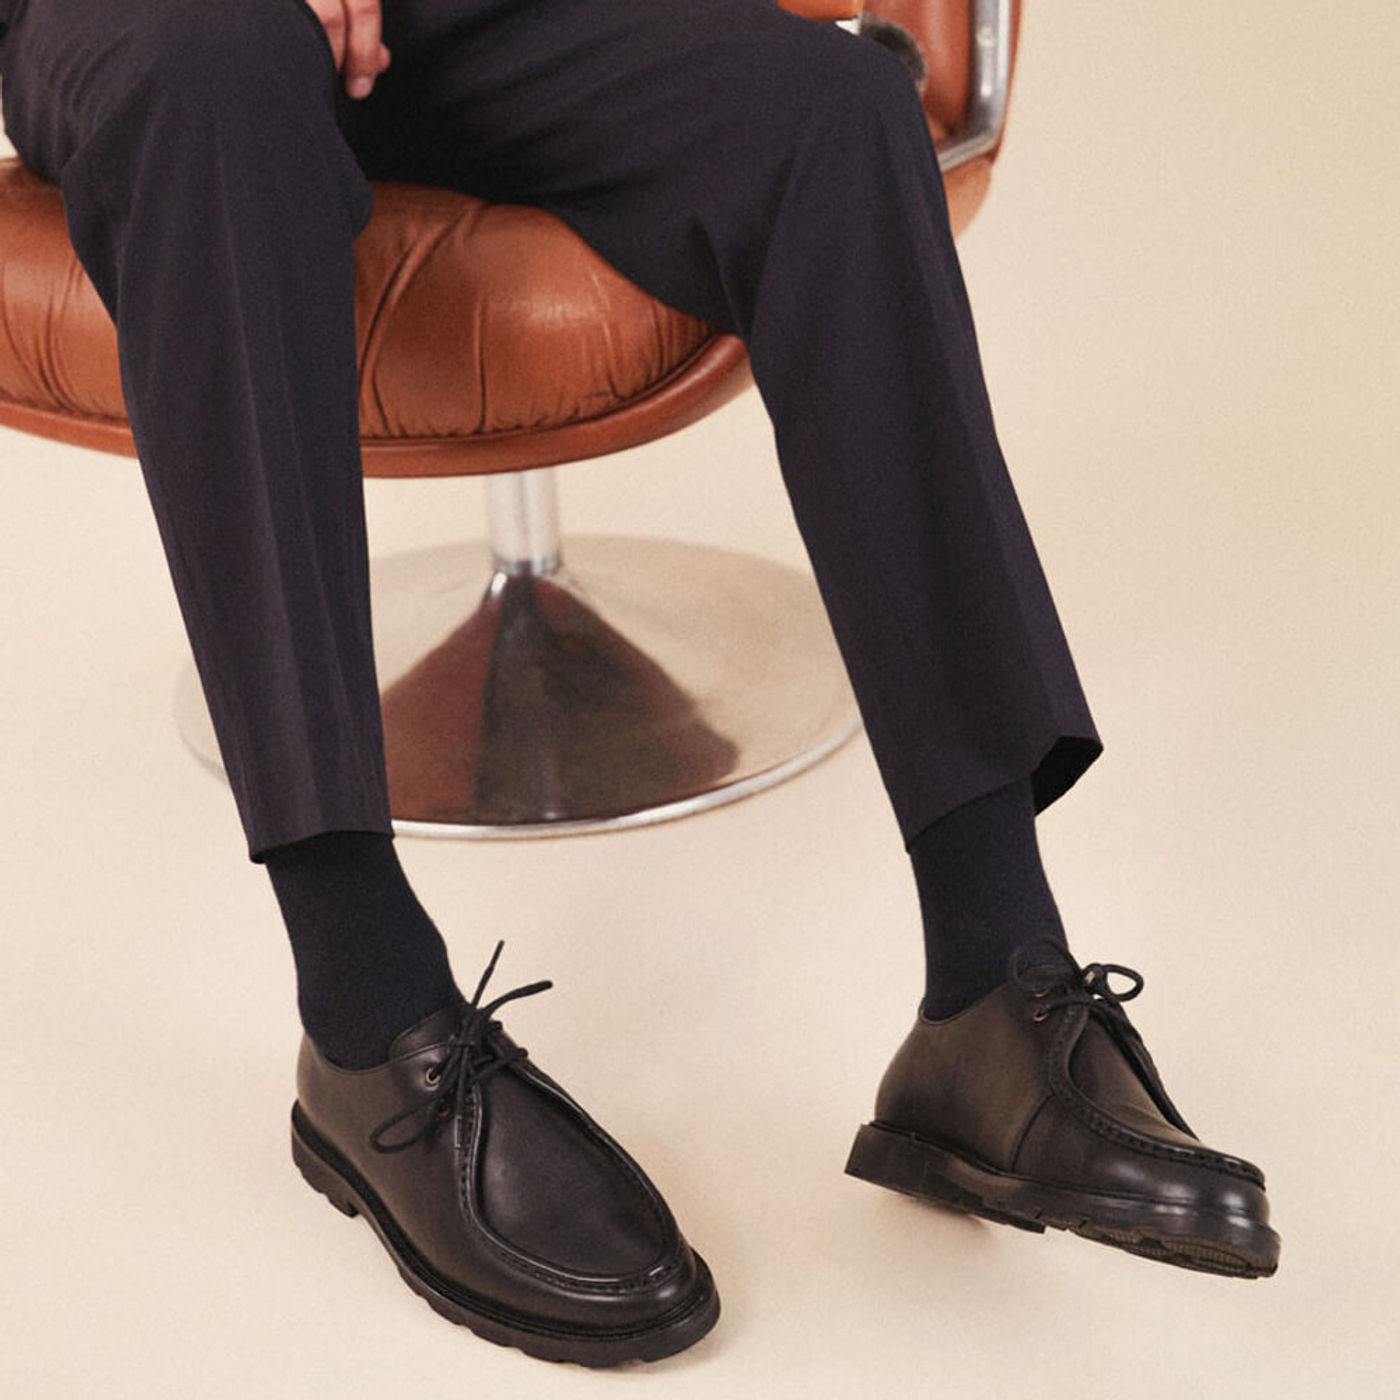 Black Leather Gaspard Derby Shoes   Bombinate